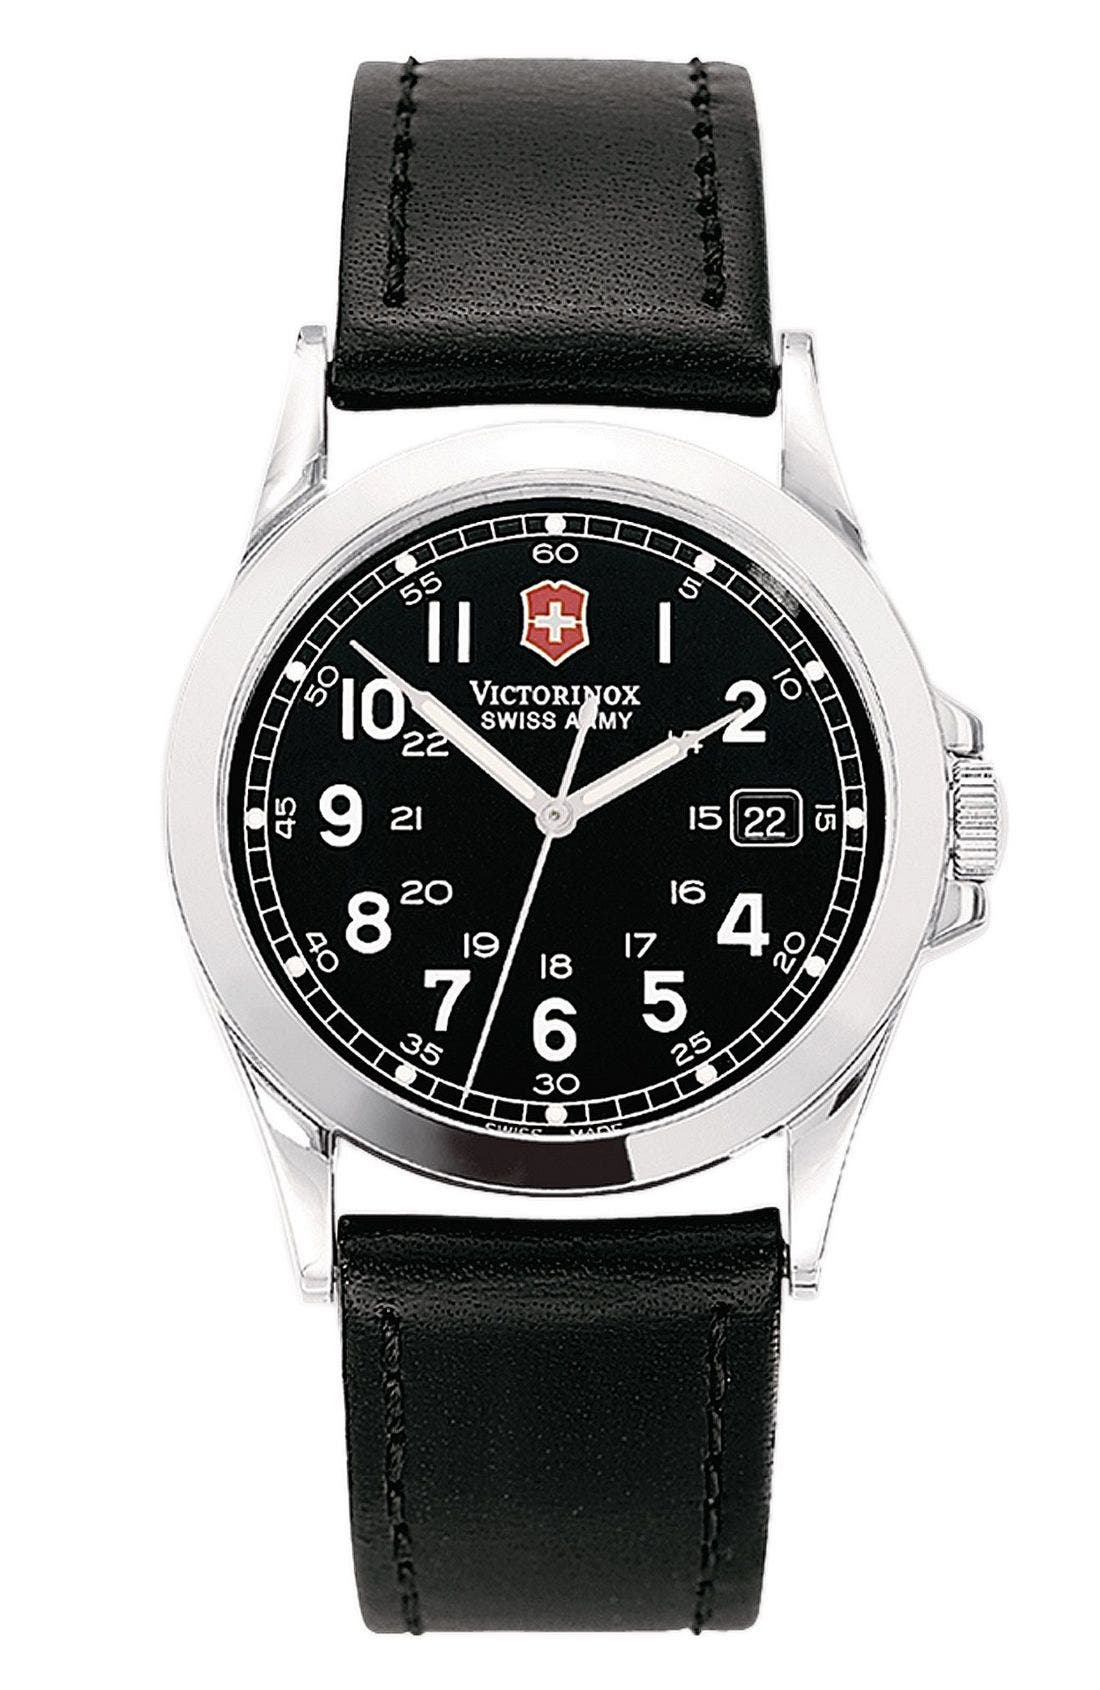 Main Image - Victorinox Swiss Army® 'Infantry' 38mm Watch with Leather Band